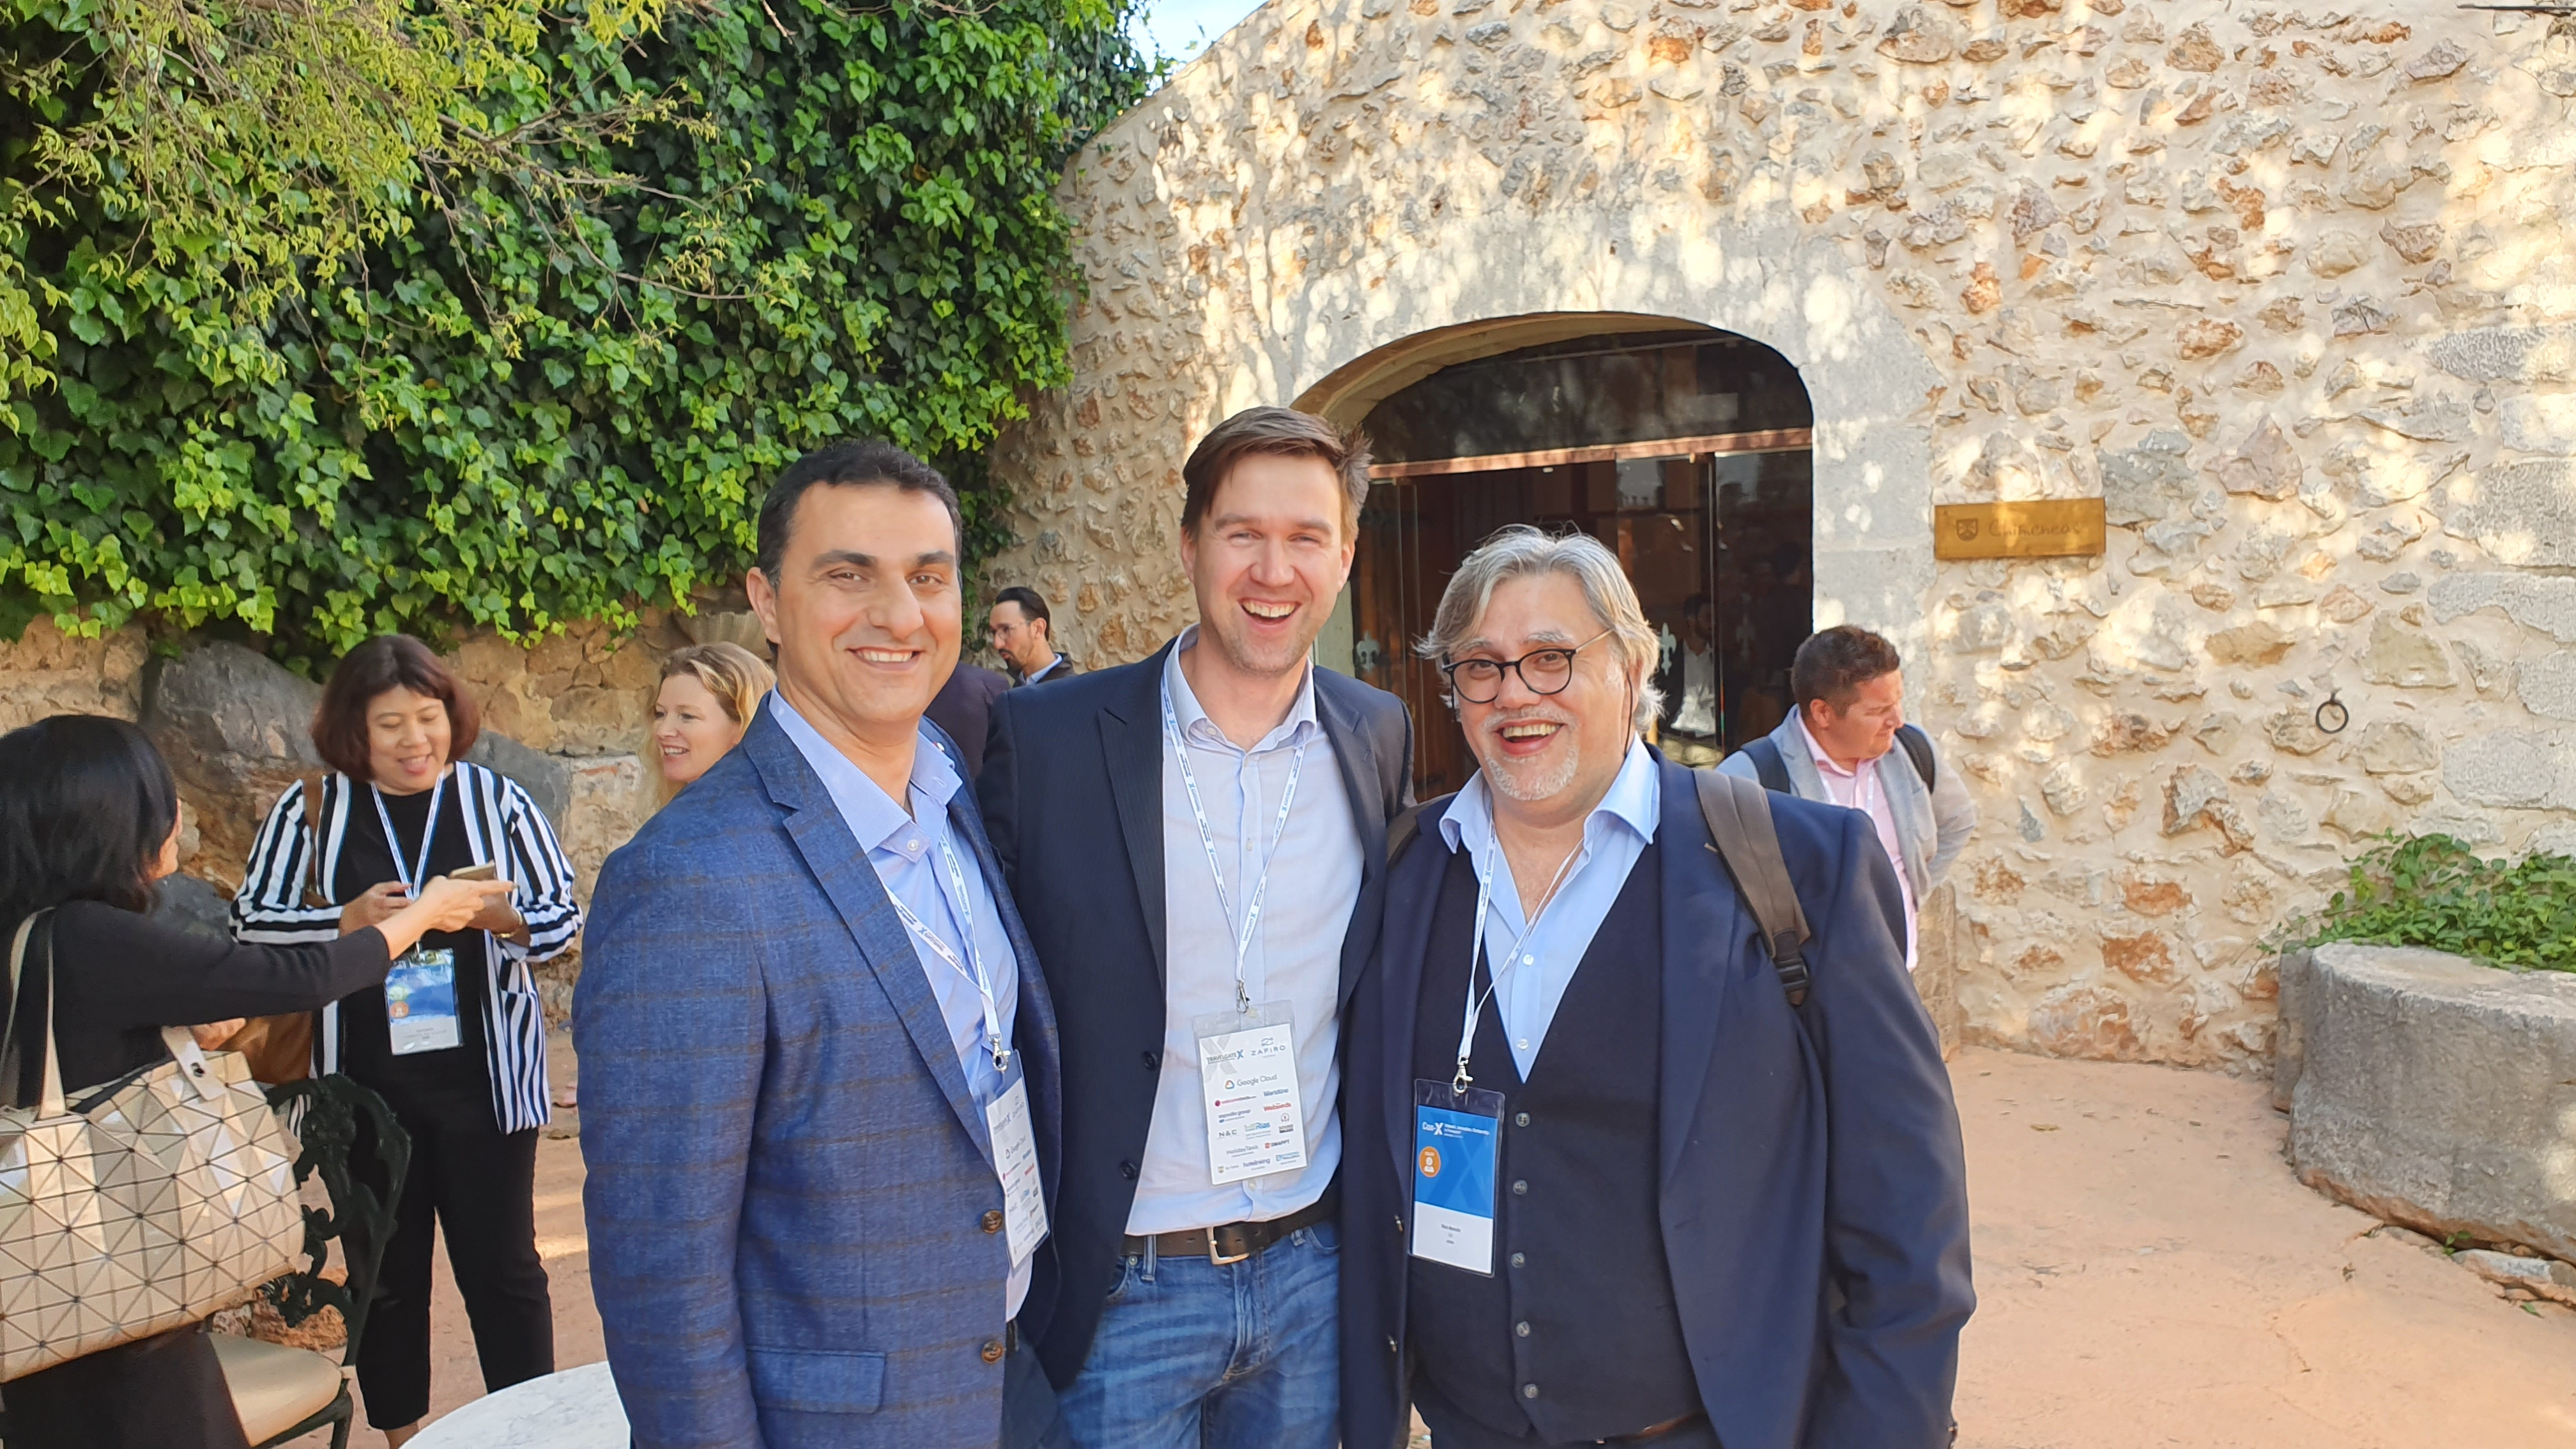 Cyberlogic @ TravelgateX Con-X Event 2019 - Highlights